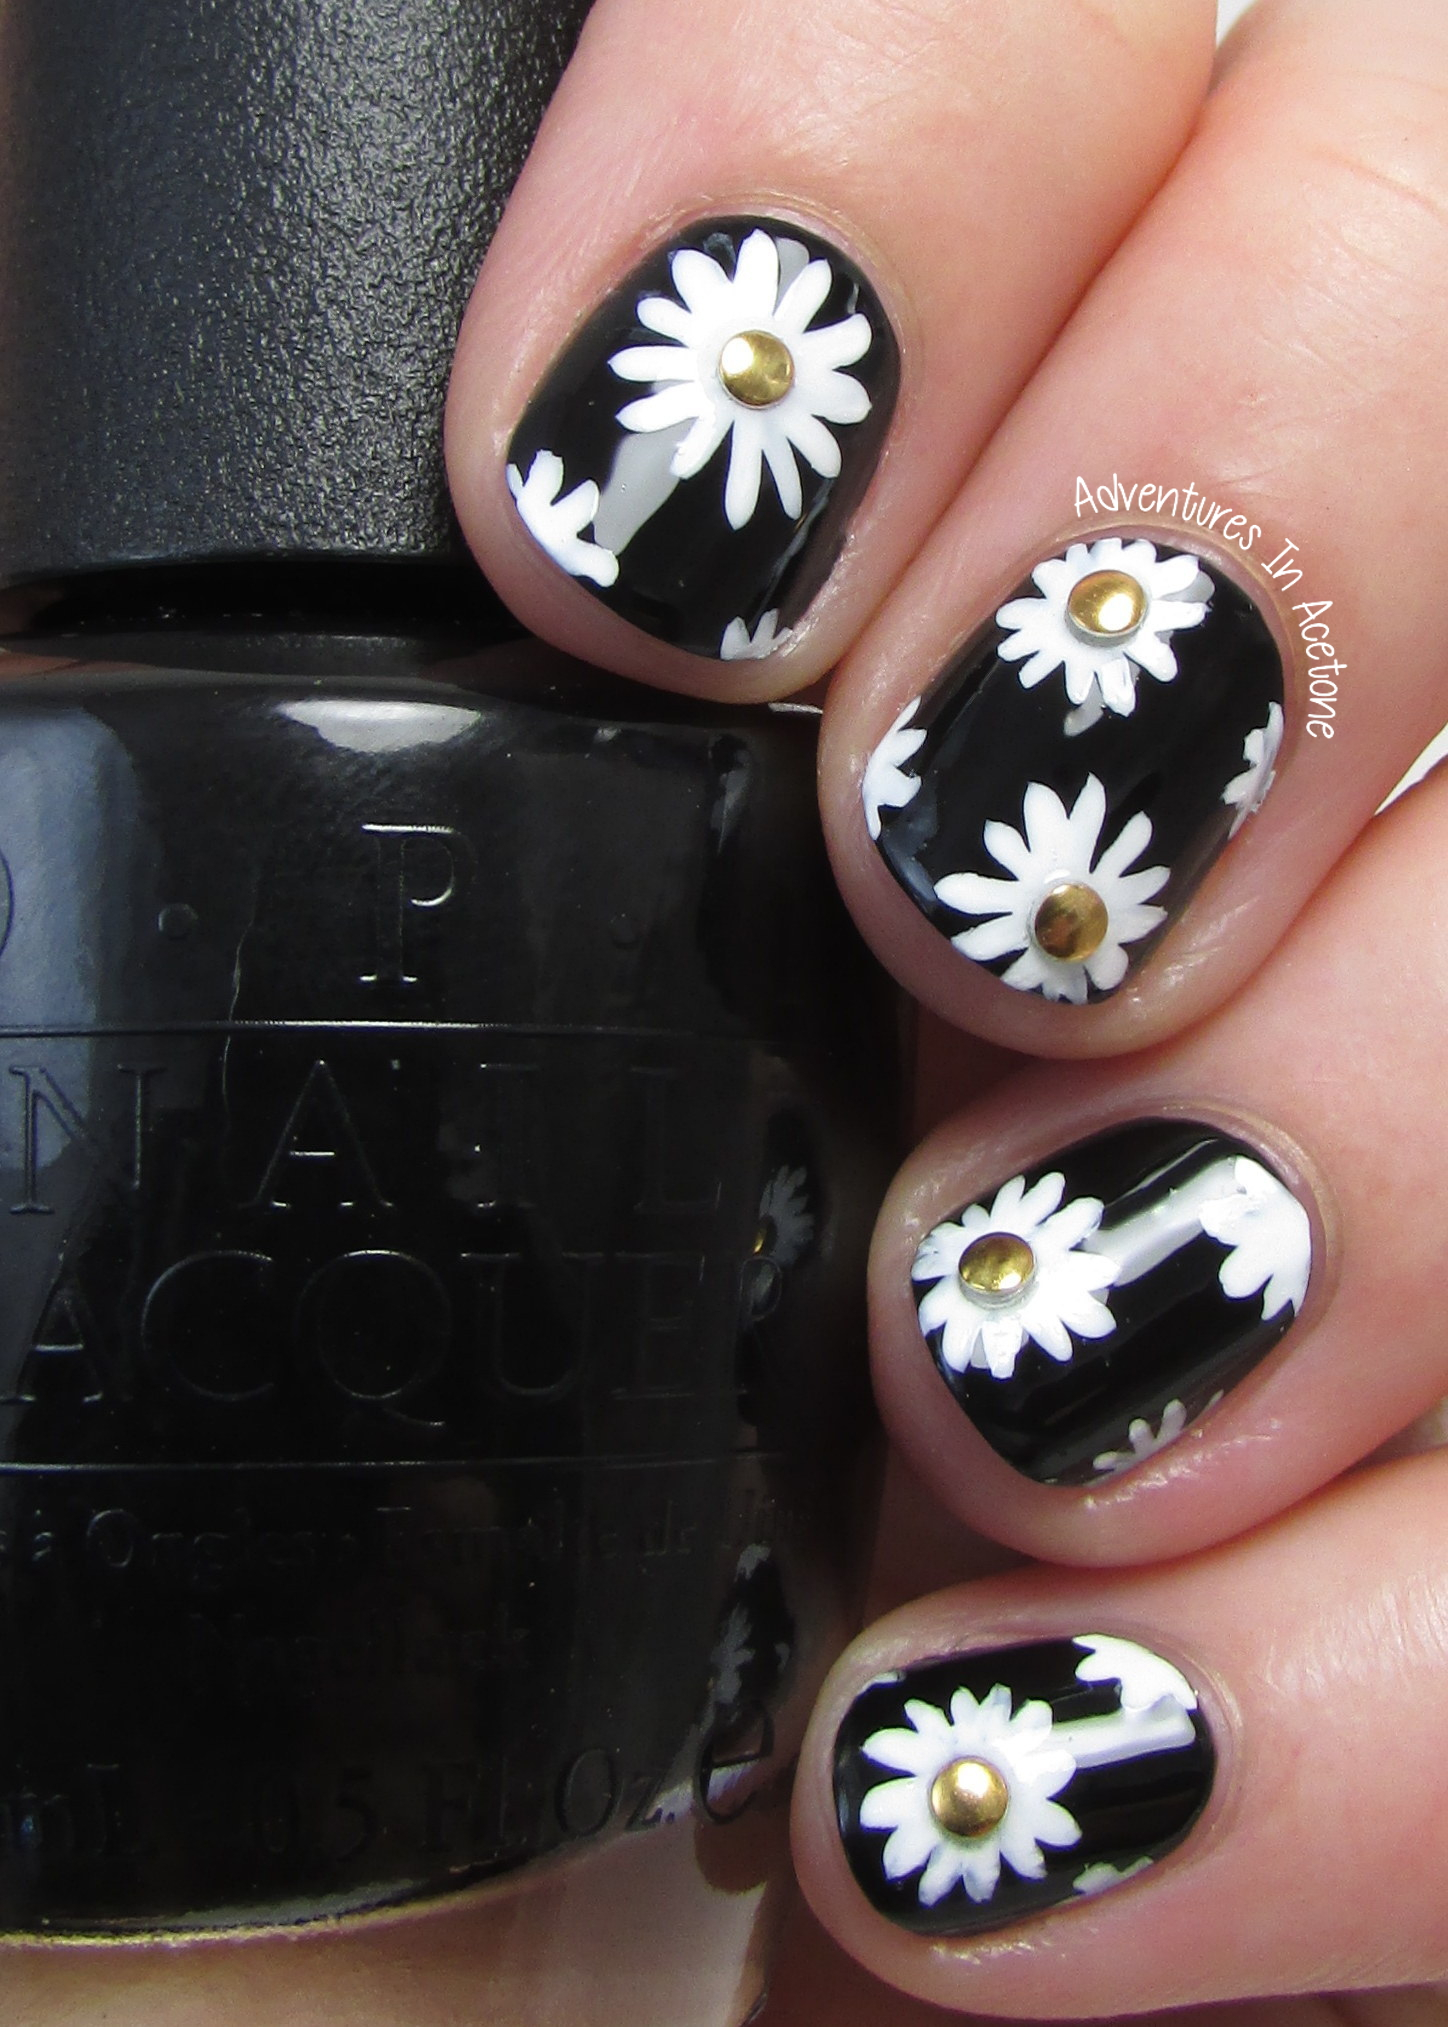 40 Great Nail Art Ideas: Black and White Daisies - Adventures In Acetone